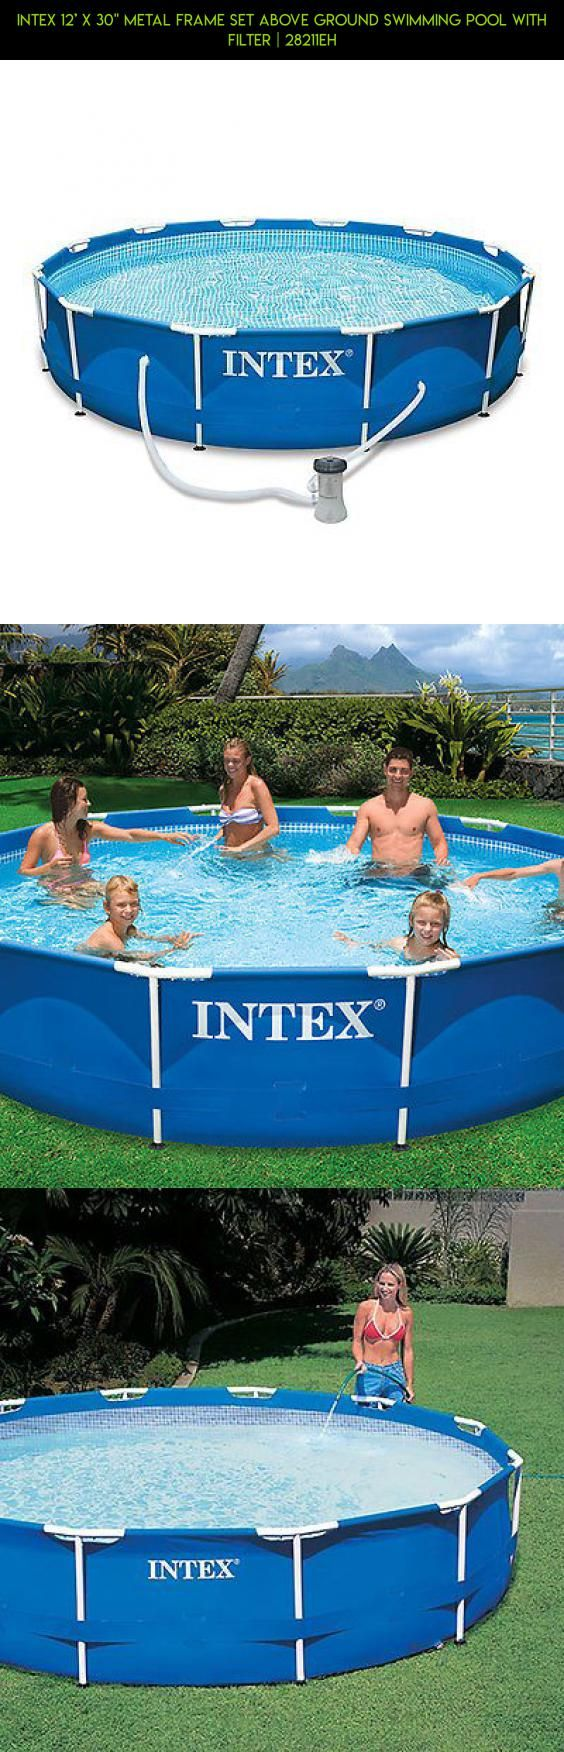 Intex 12x30 Metal Frame Pool